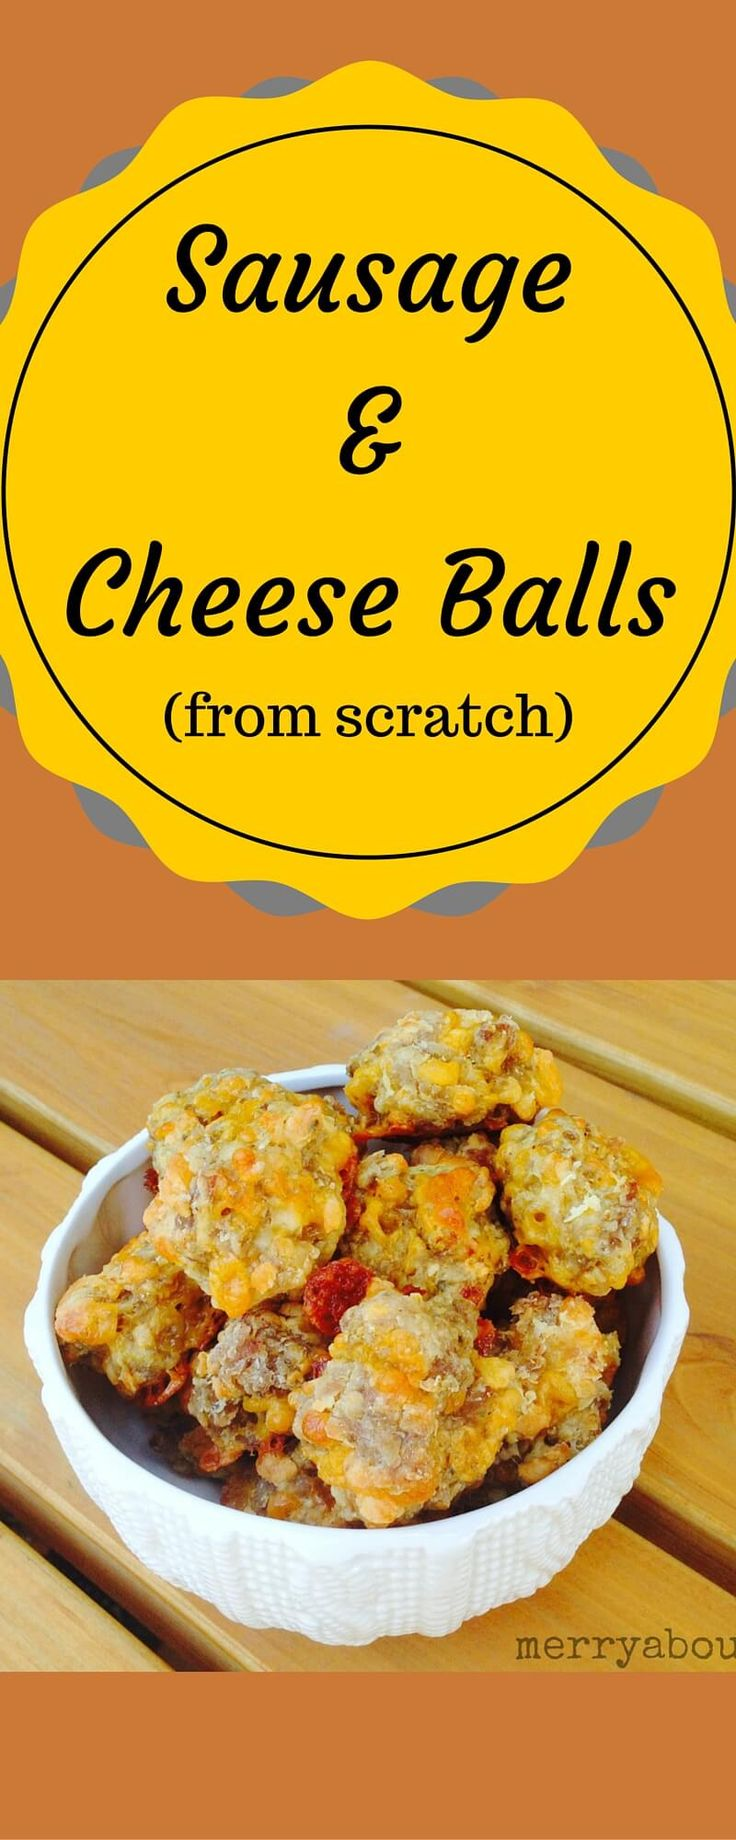 Sausage & Cheese Ball Recipe from scratch, no mix!